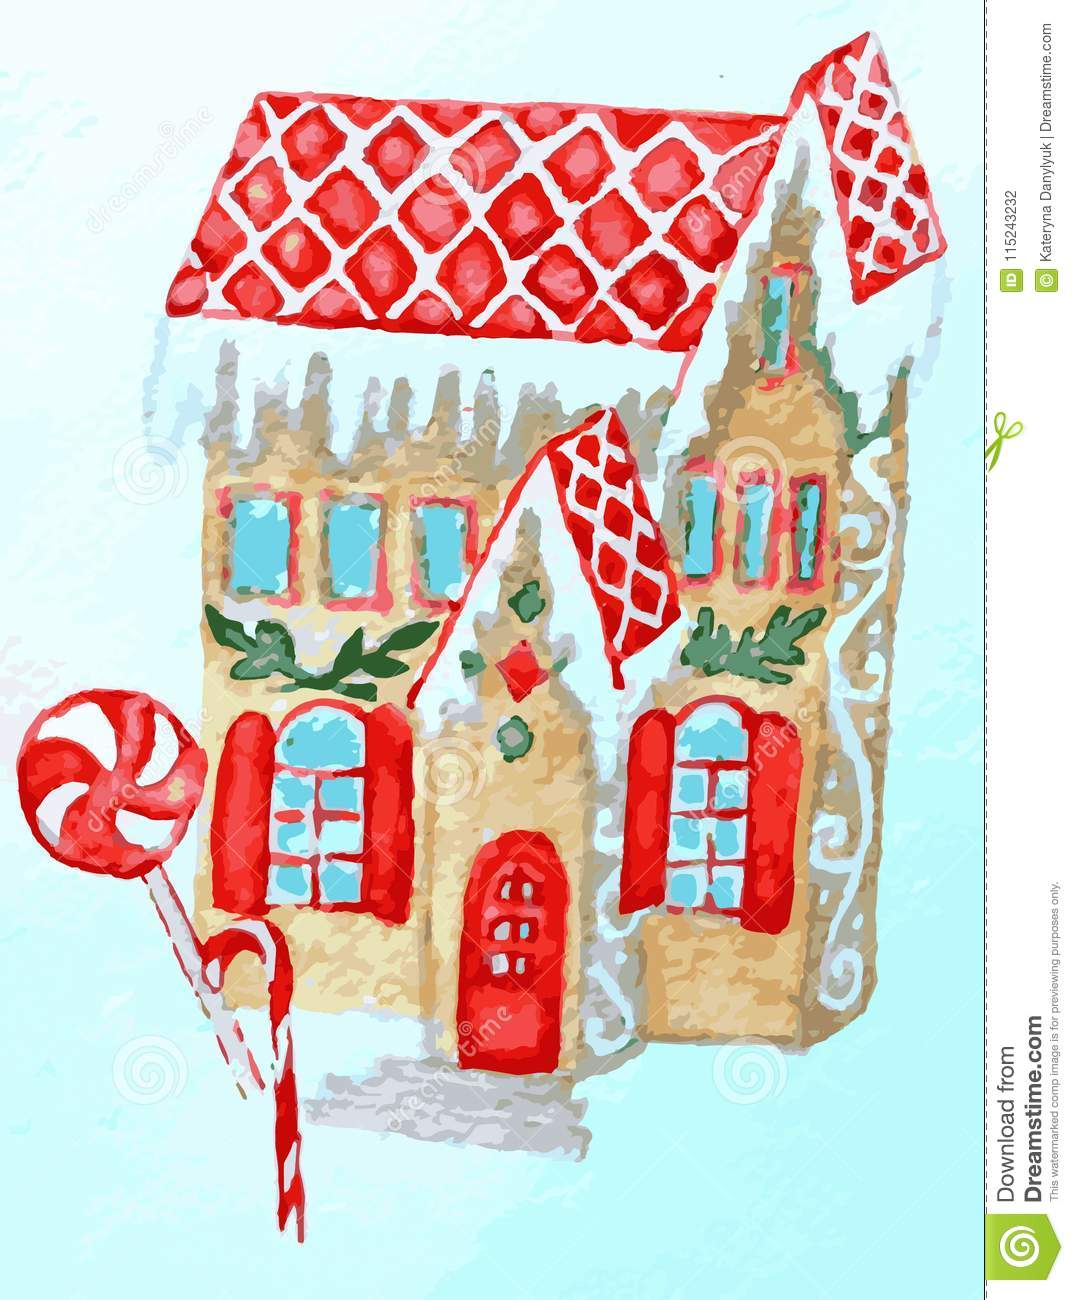 Christmas Gingerbread House Stock Illustrations – 3,806 Christmas on butterfly roof designs, church roof designs, gingerbread house chimneys, gingerbread house masonry, garden roof designs, birdhouse roof designs, snow roof designs, gingerbread house details, gingerbread house roofing,